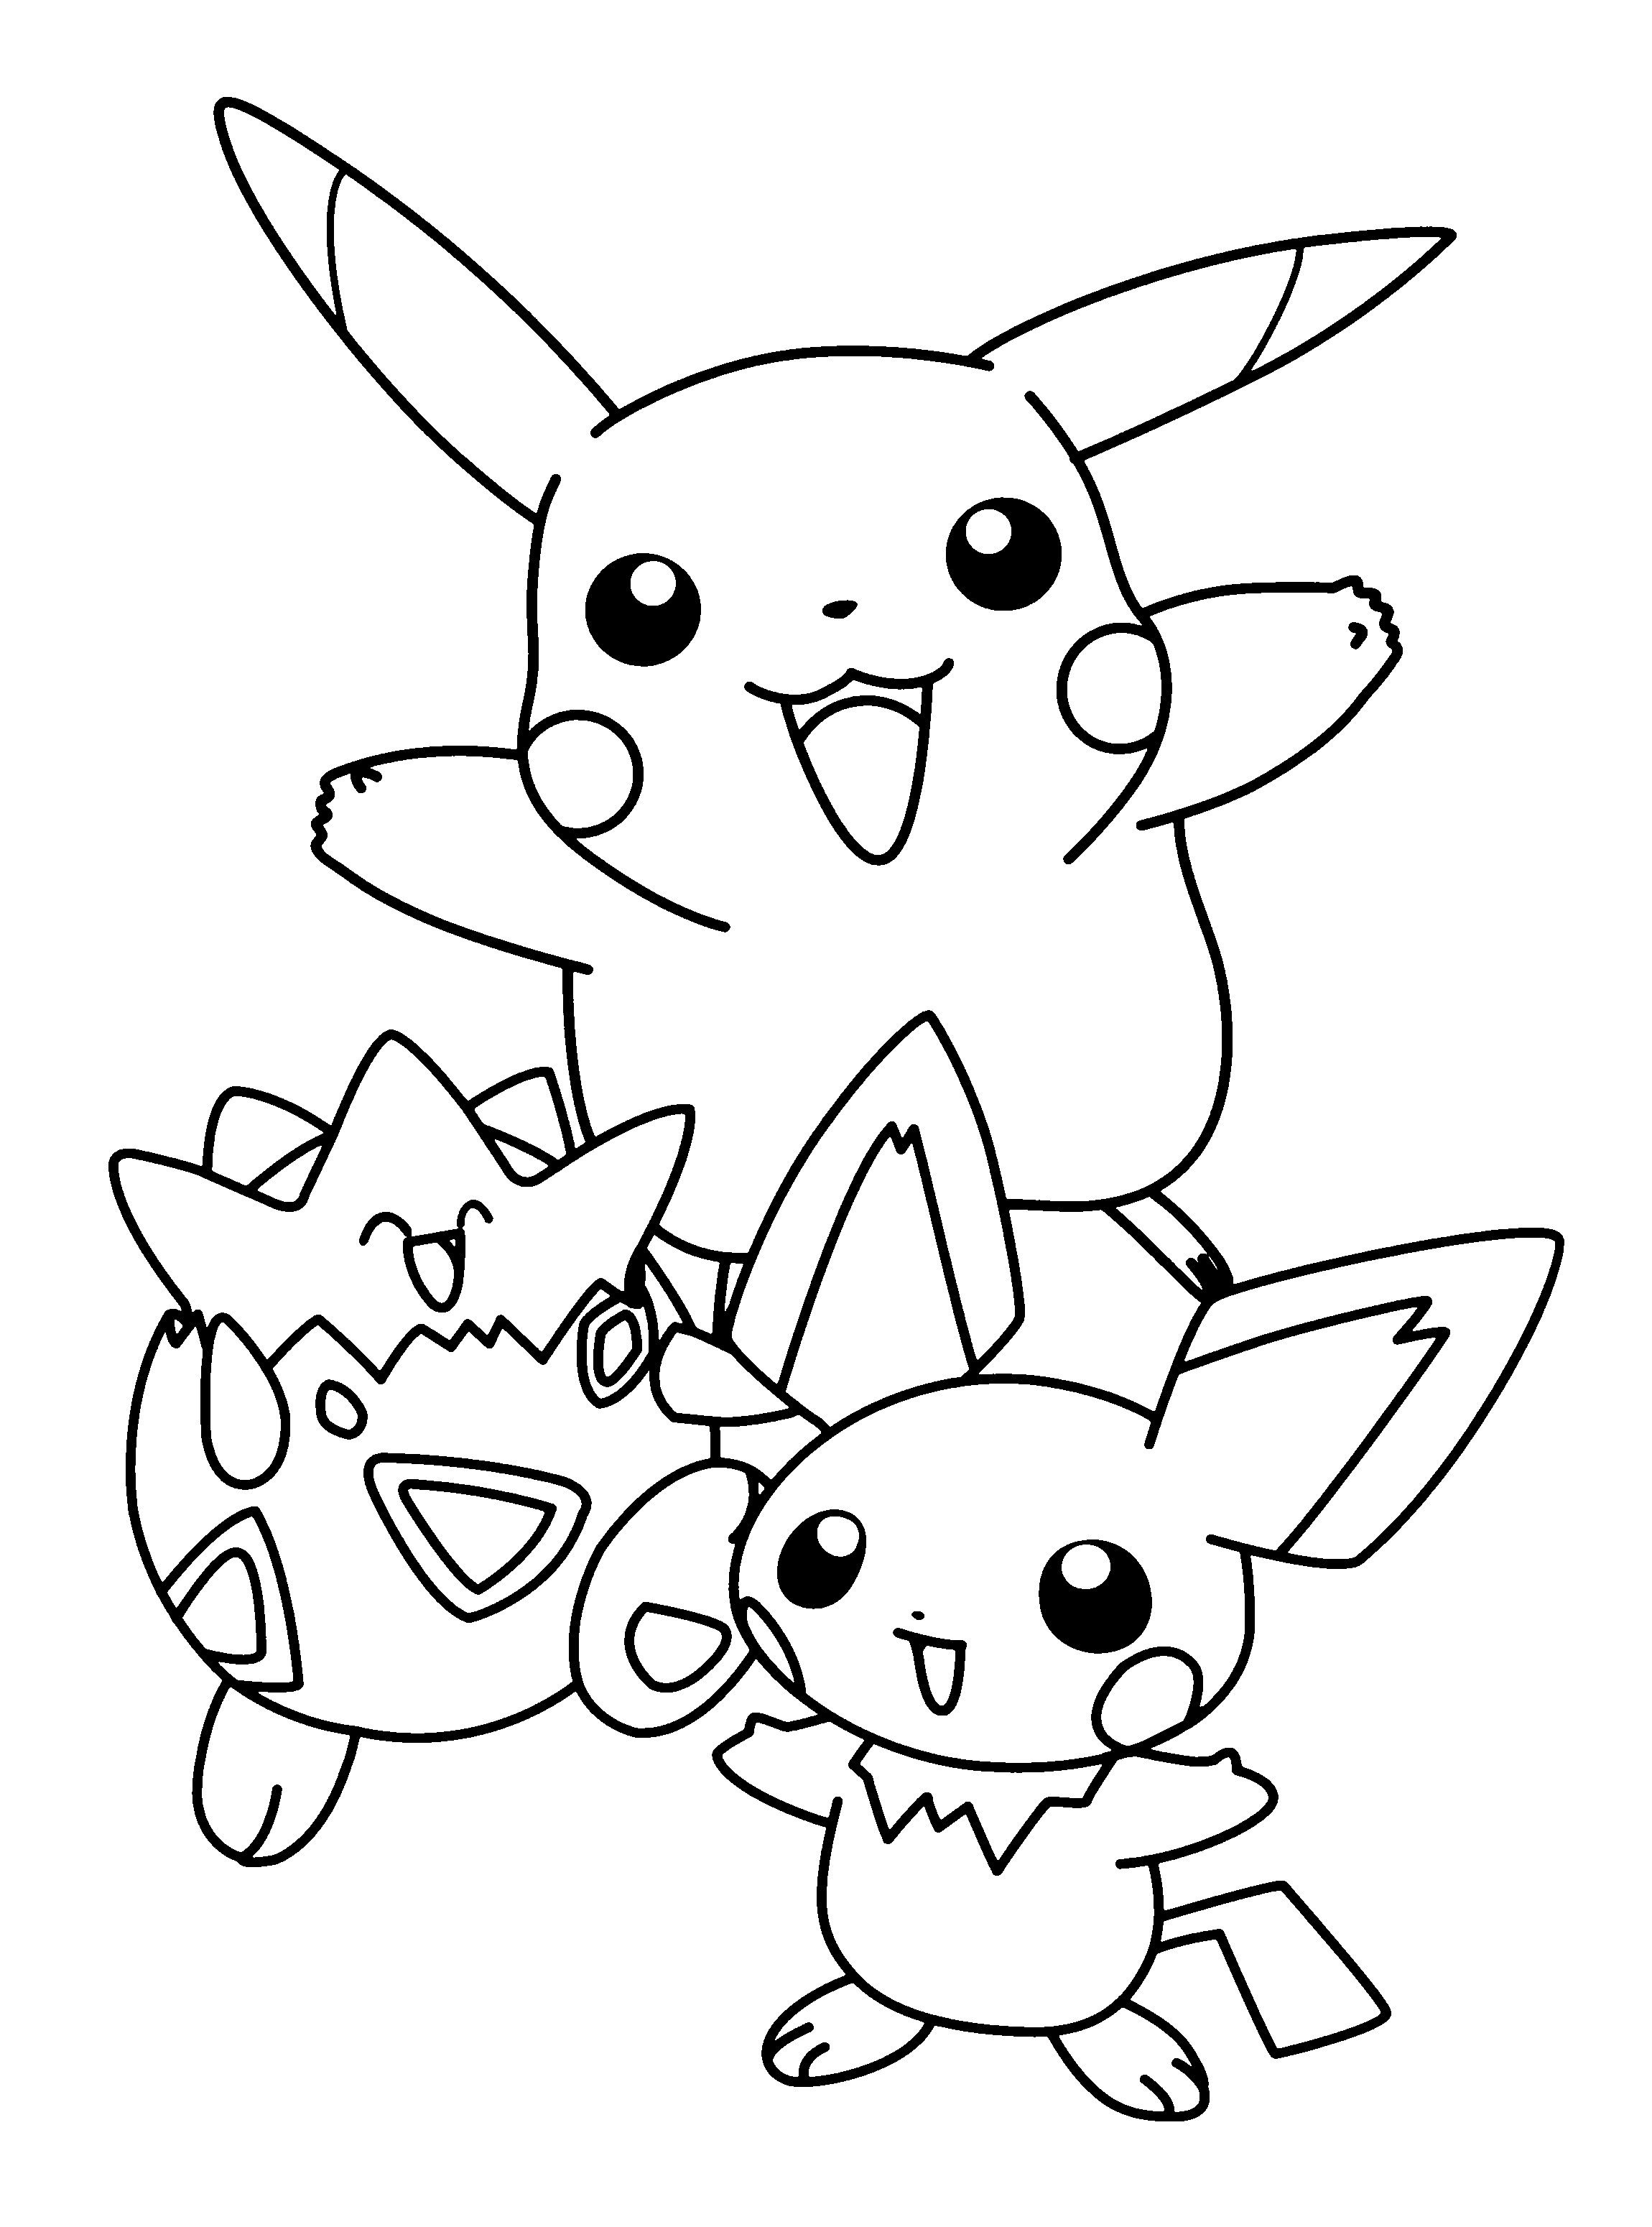 Lego Pikachu Coloring Pages Through The Thousand Pictures On The Web About Lego Pikachu Pikachu Coloring Page Cartoon Coloring Pages Pokemon Coloring Sheets